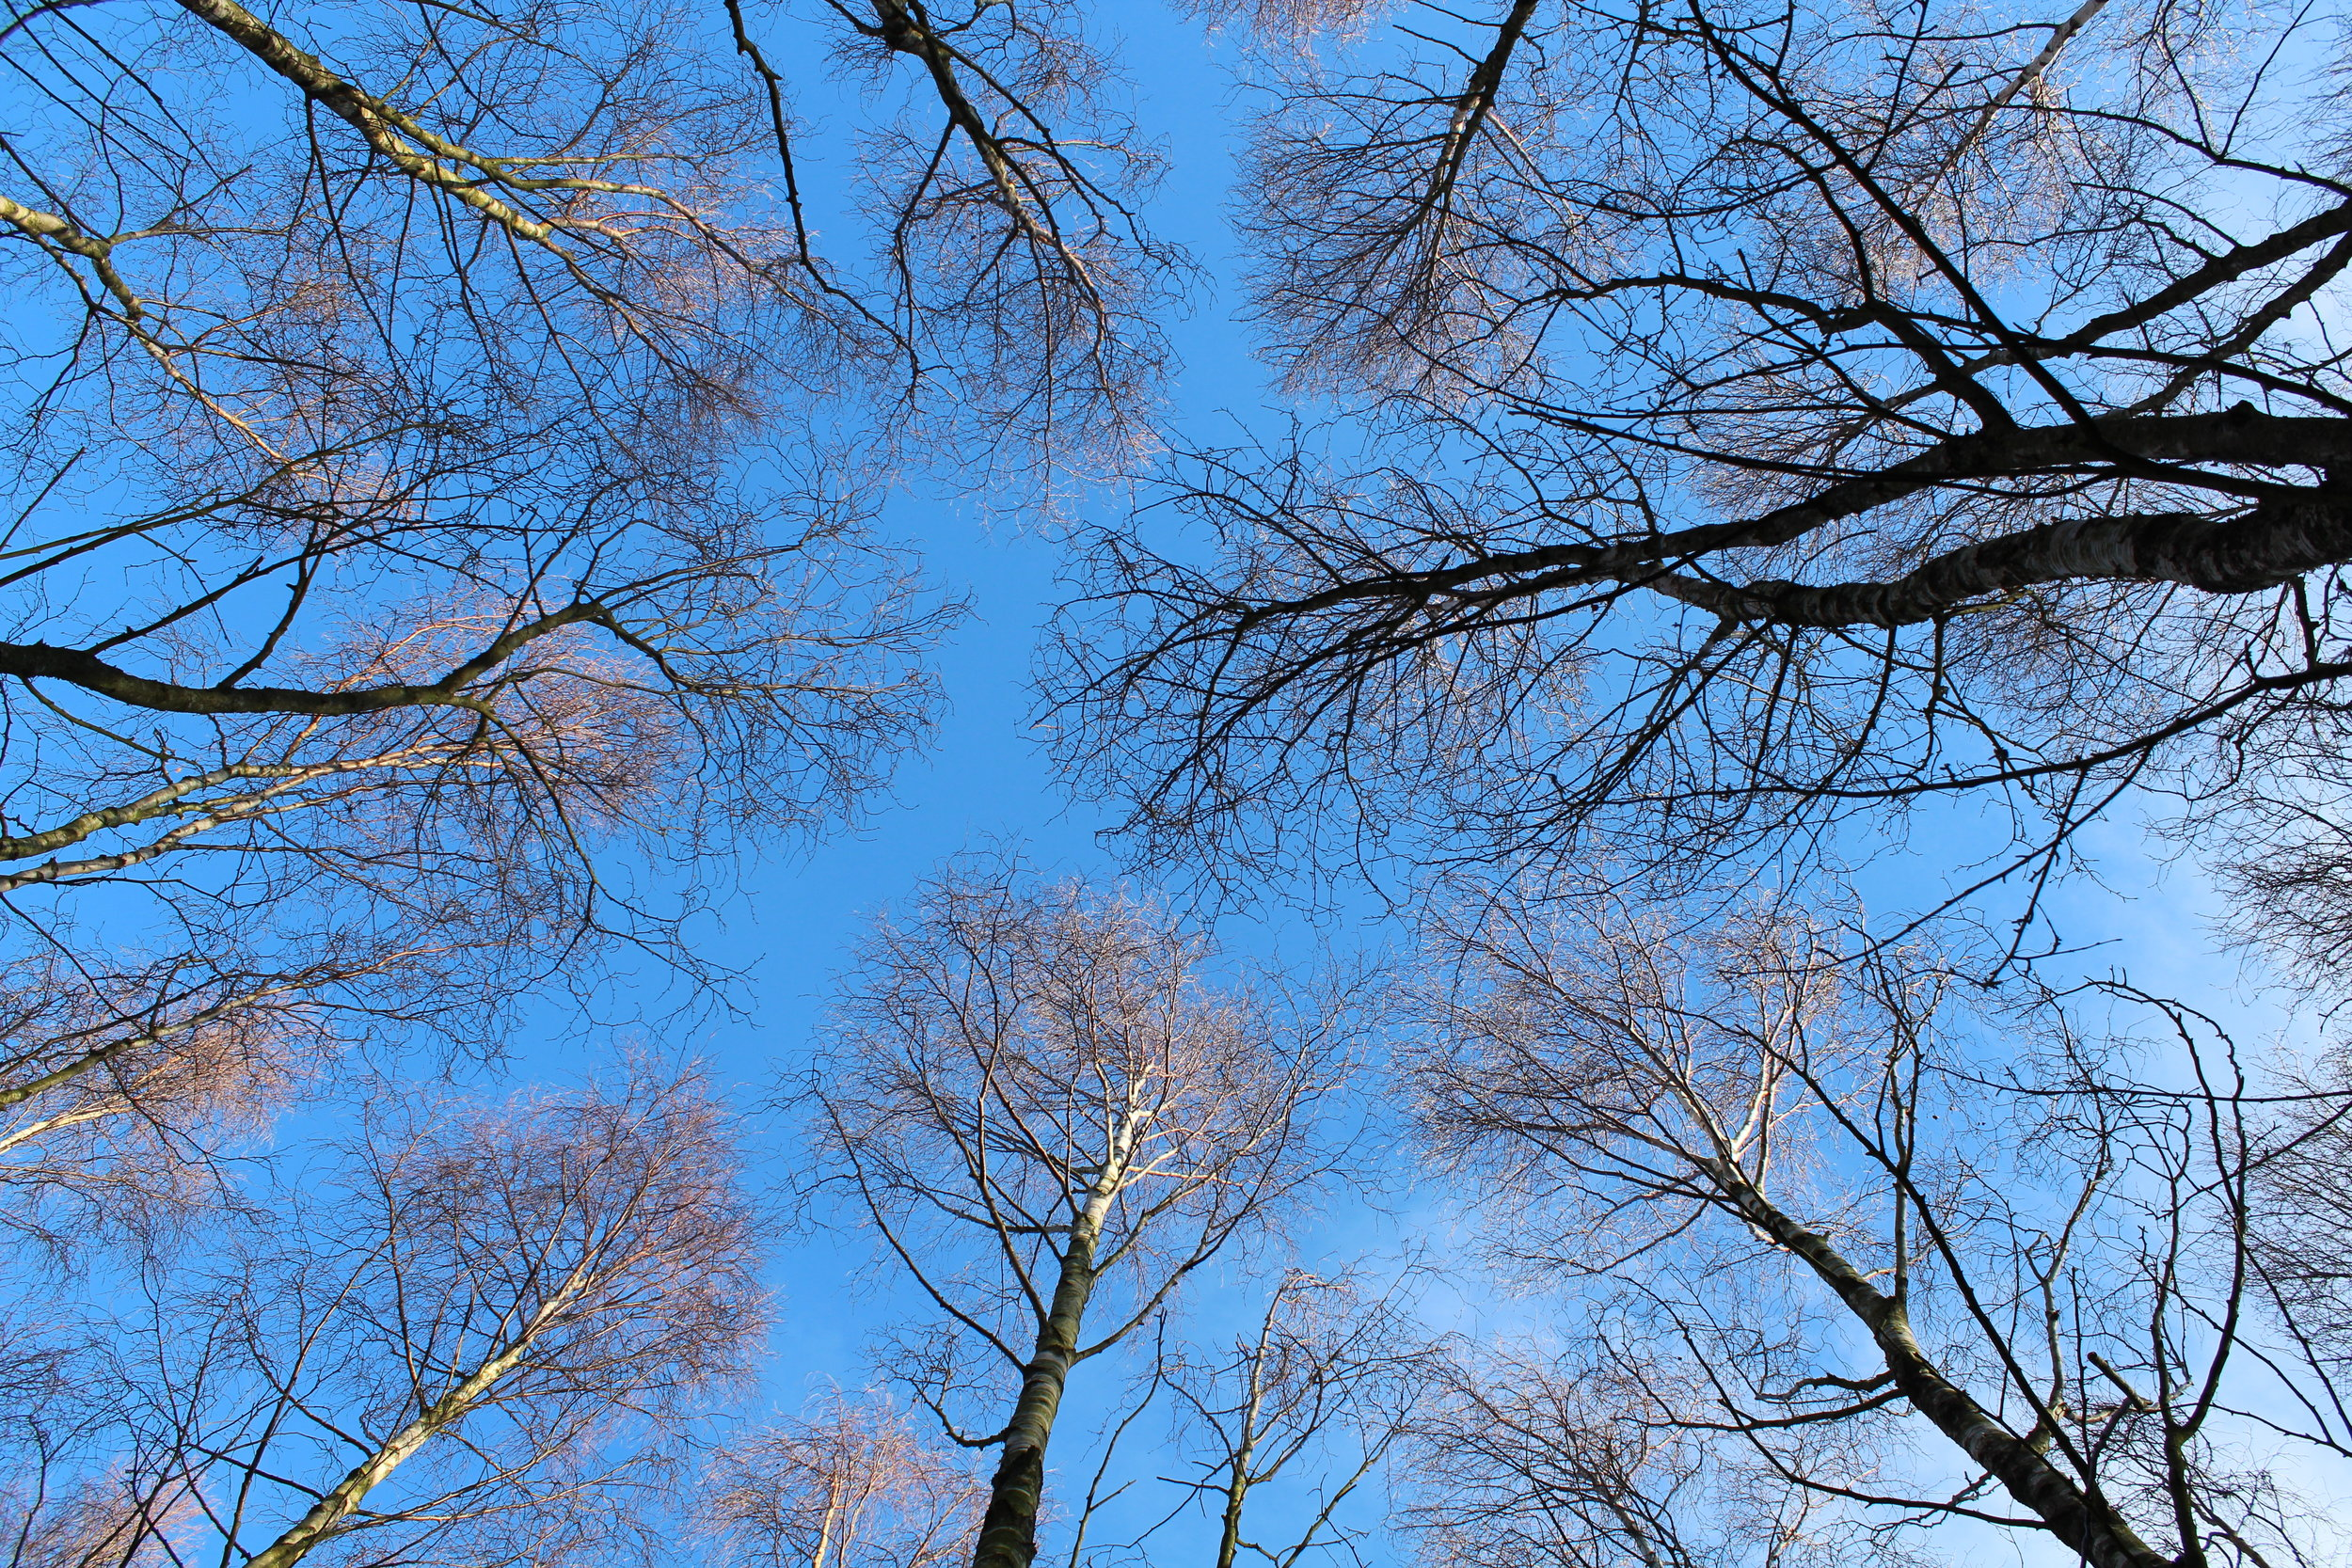 Tree canopies of birch woodland observed during an artistic residency at Pishwanton Wood